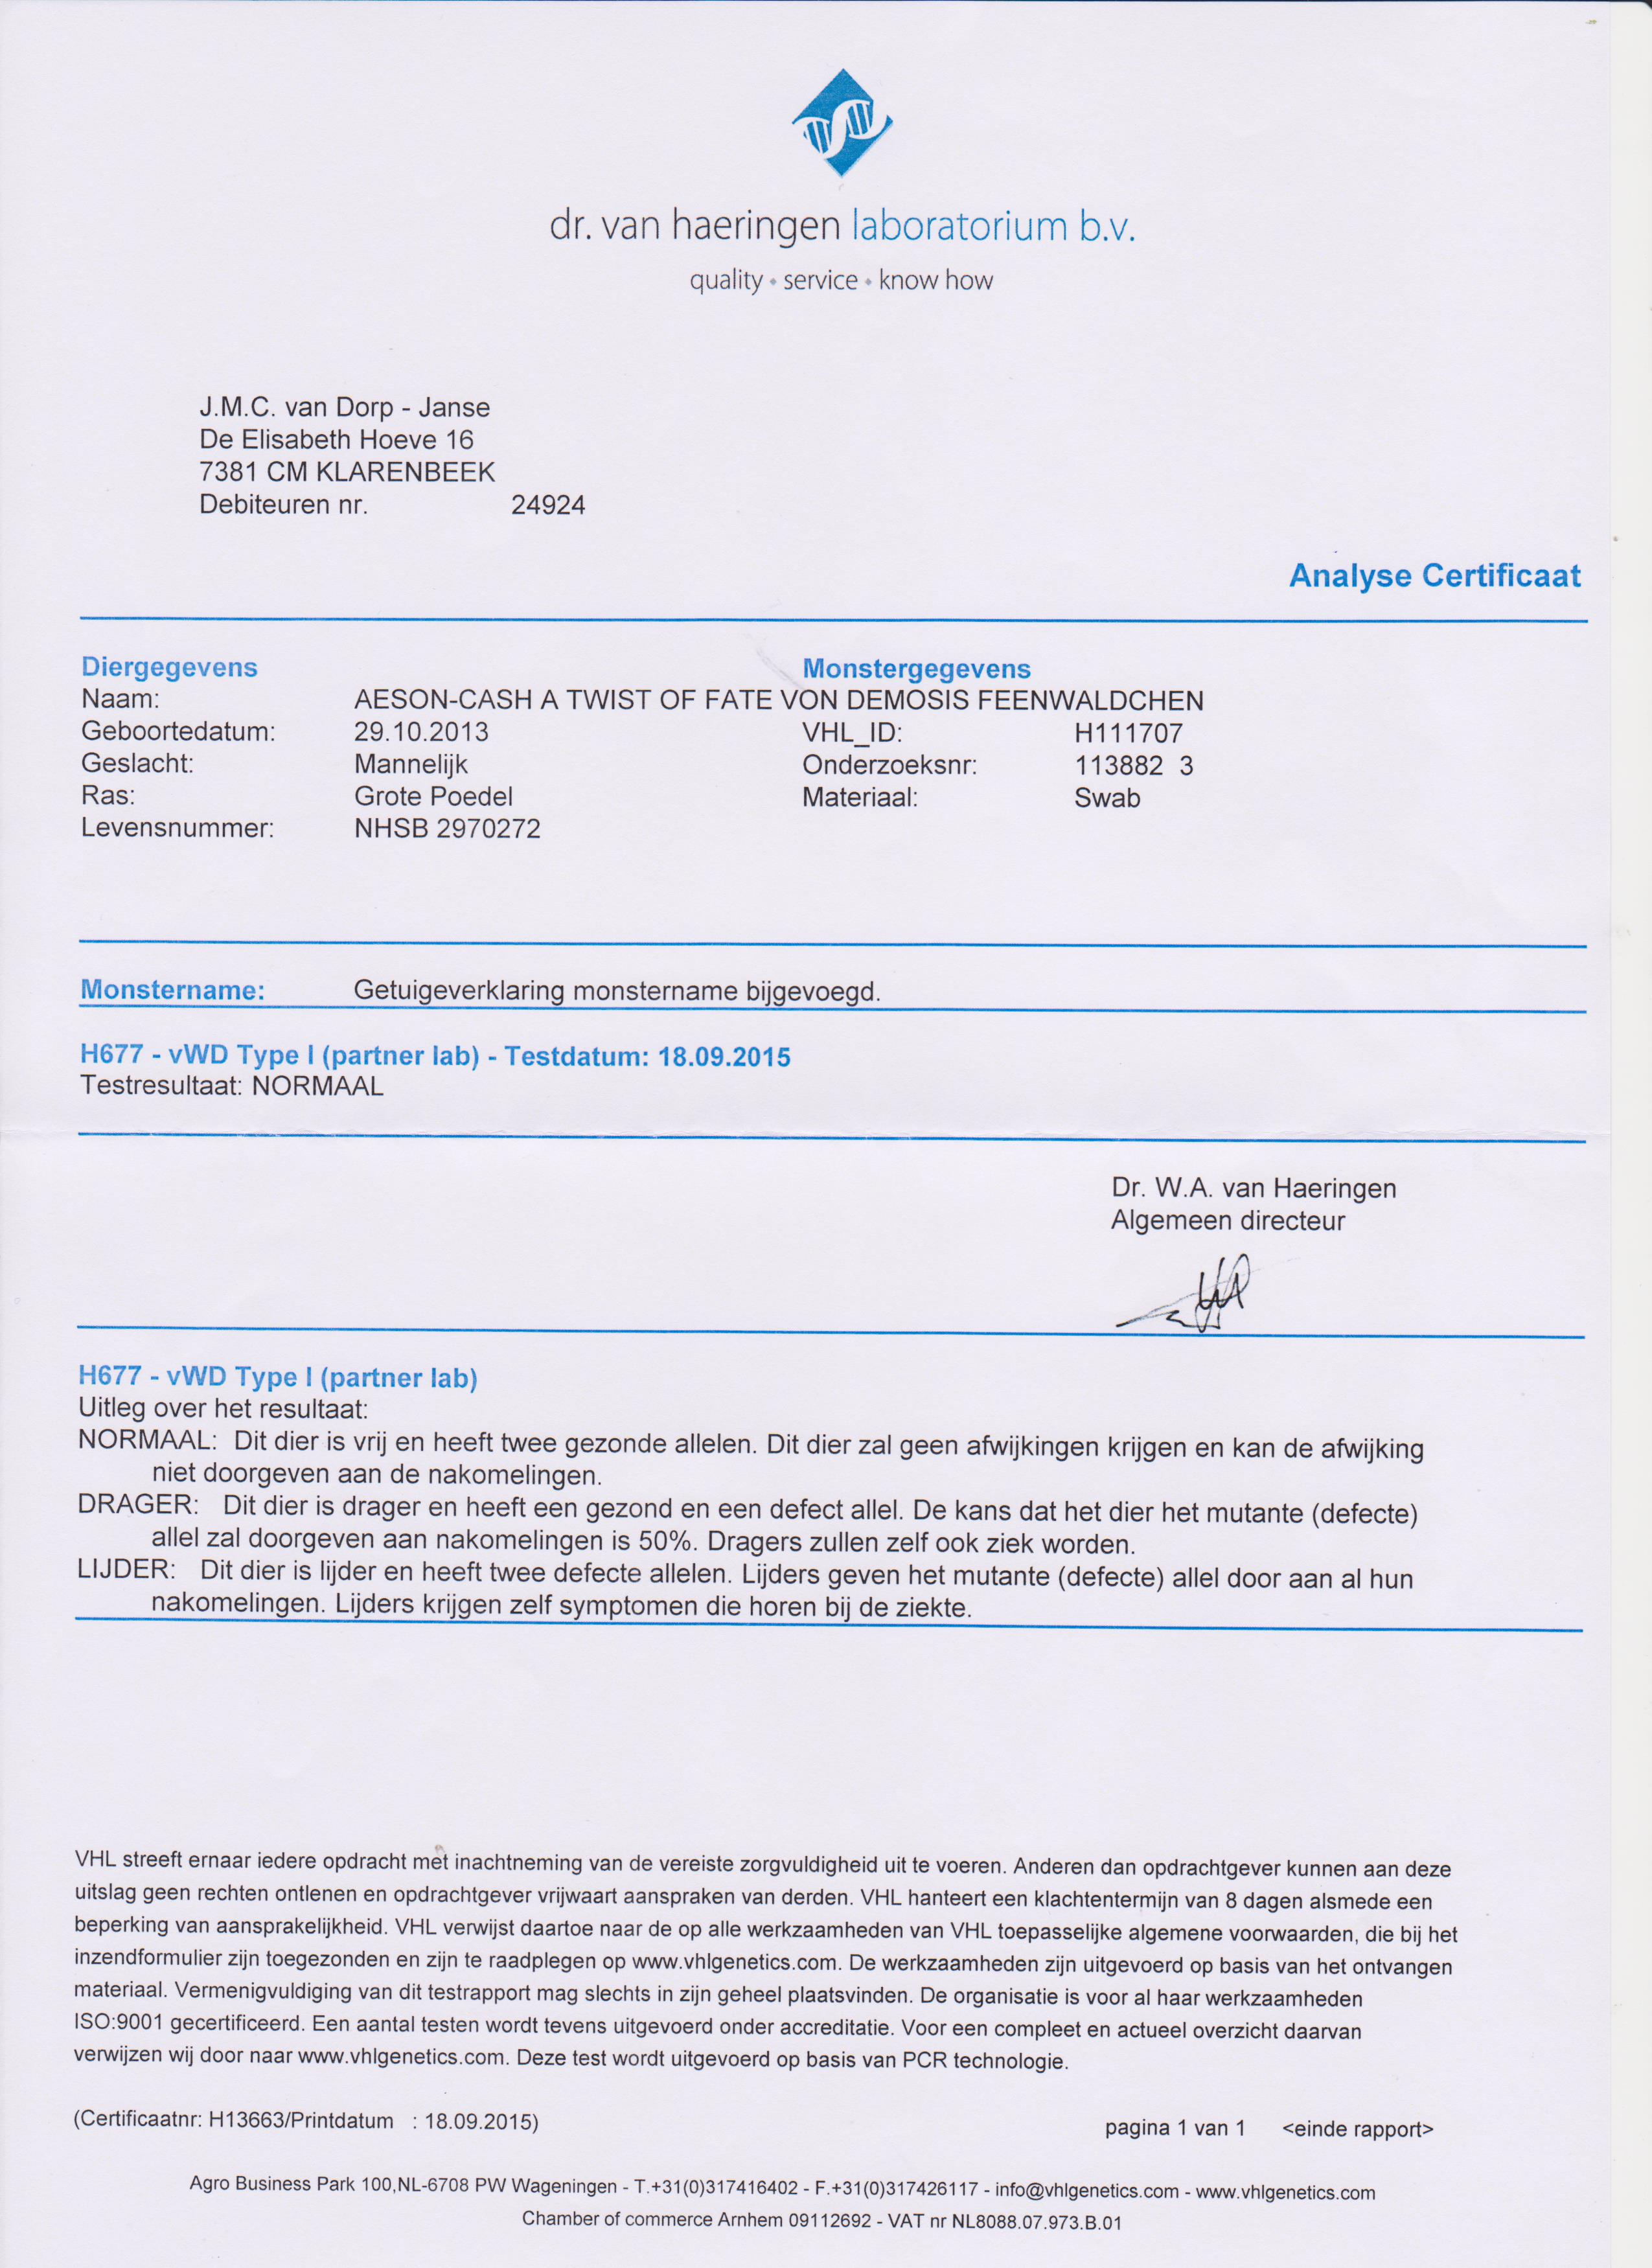 Analyse Certificaat DNA vvWD type1 Cash 001